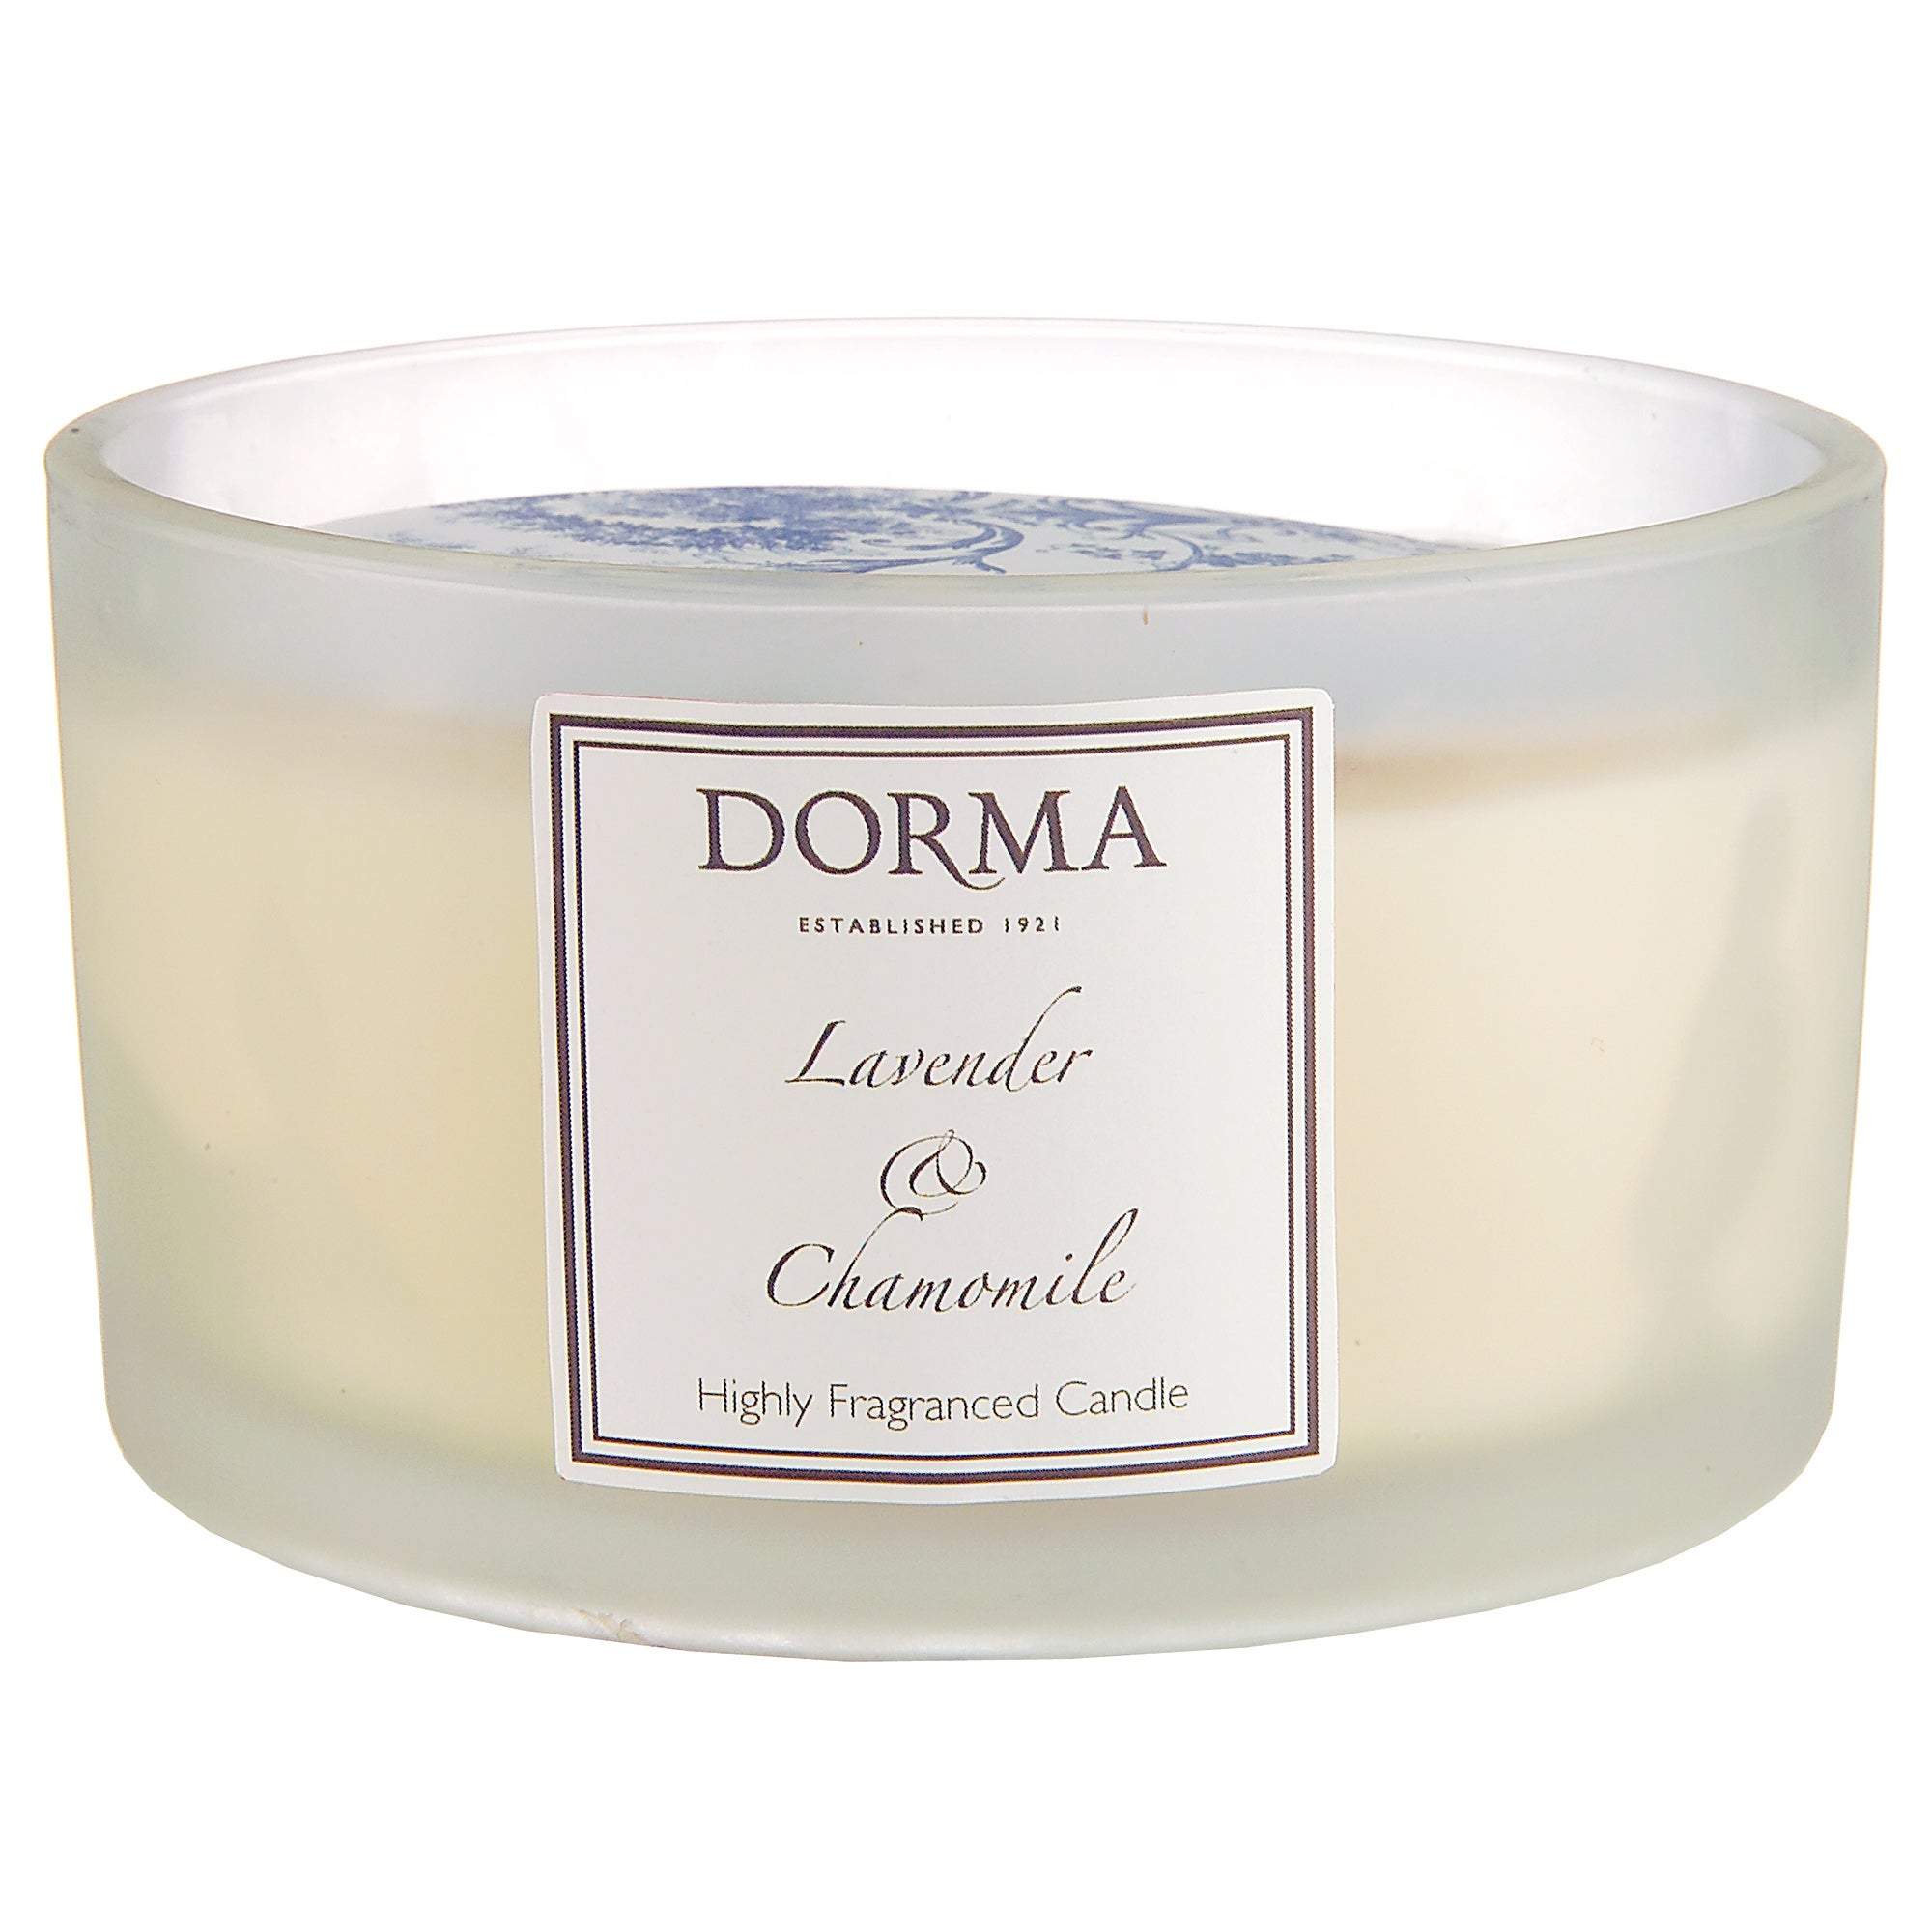 Dorma Lavender and Chamomile Wide Glass Candle